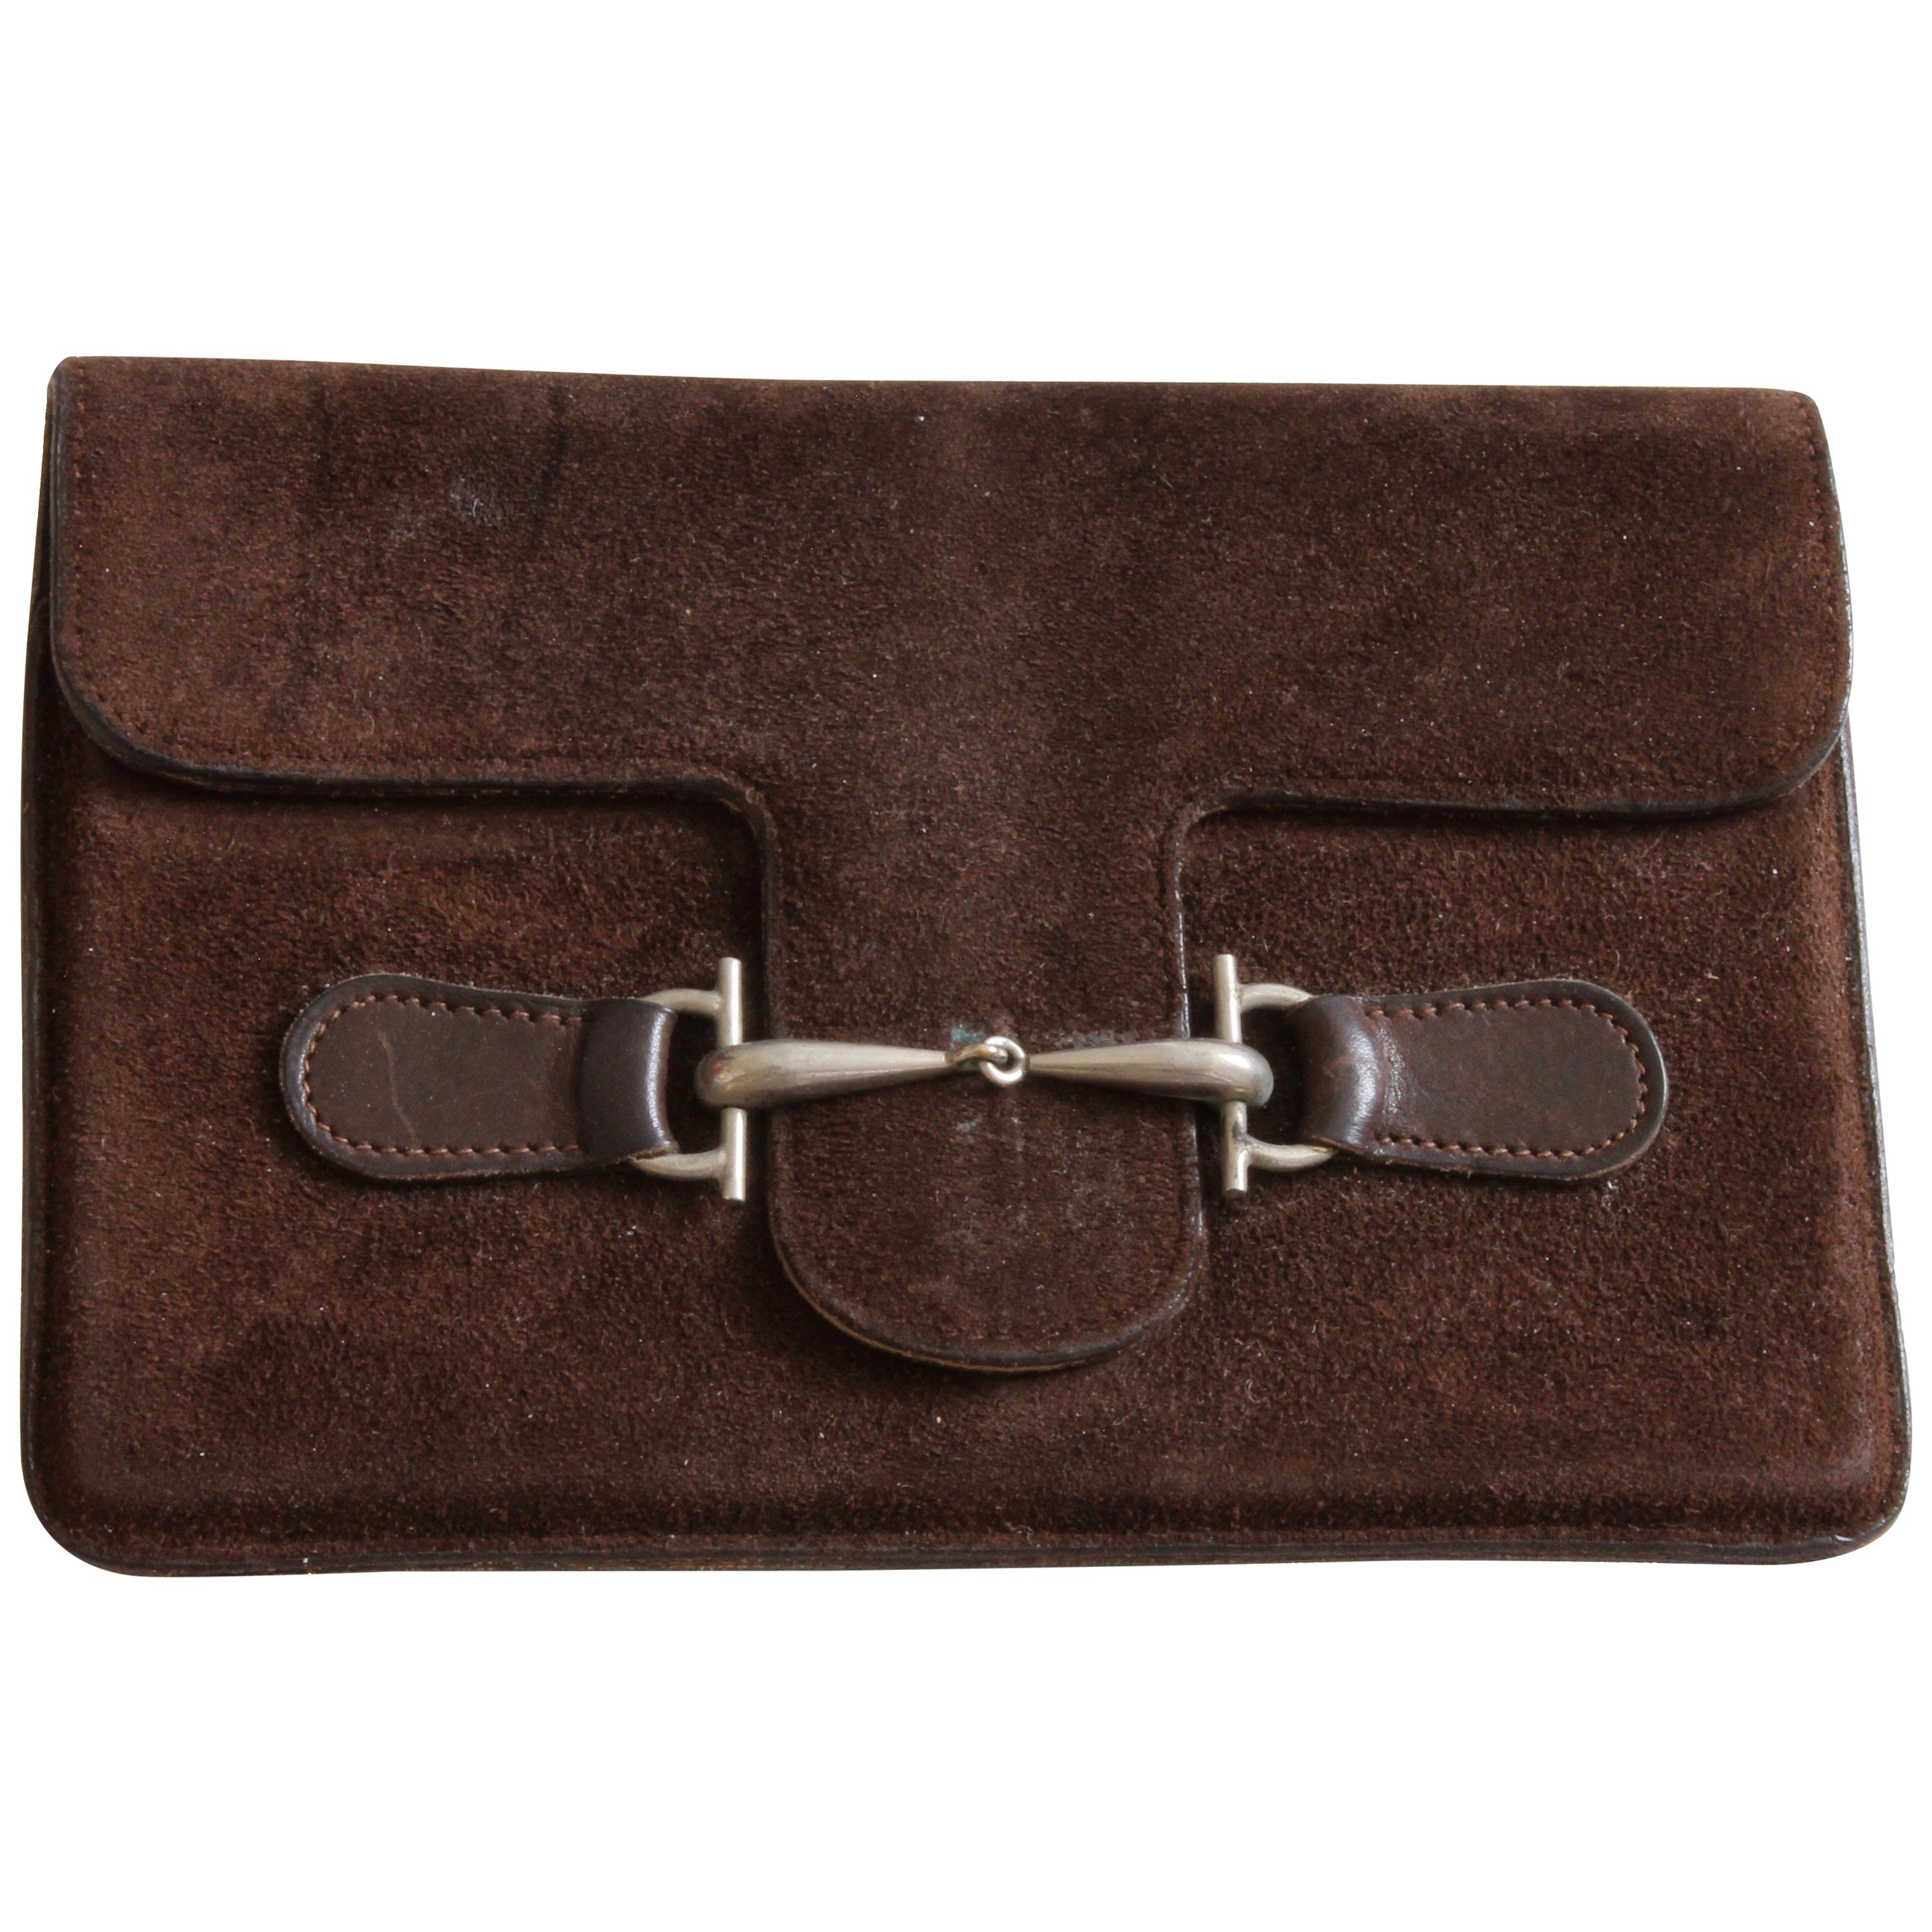 ee550a5caf35 Rare Gucci Suede Leather Travel Pouch or Wallet with Metal Frame Vintage  60s at 1stdibs